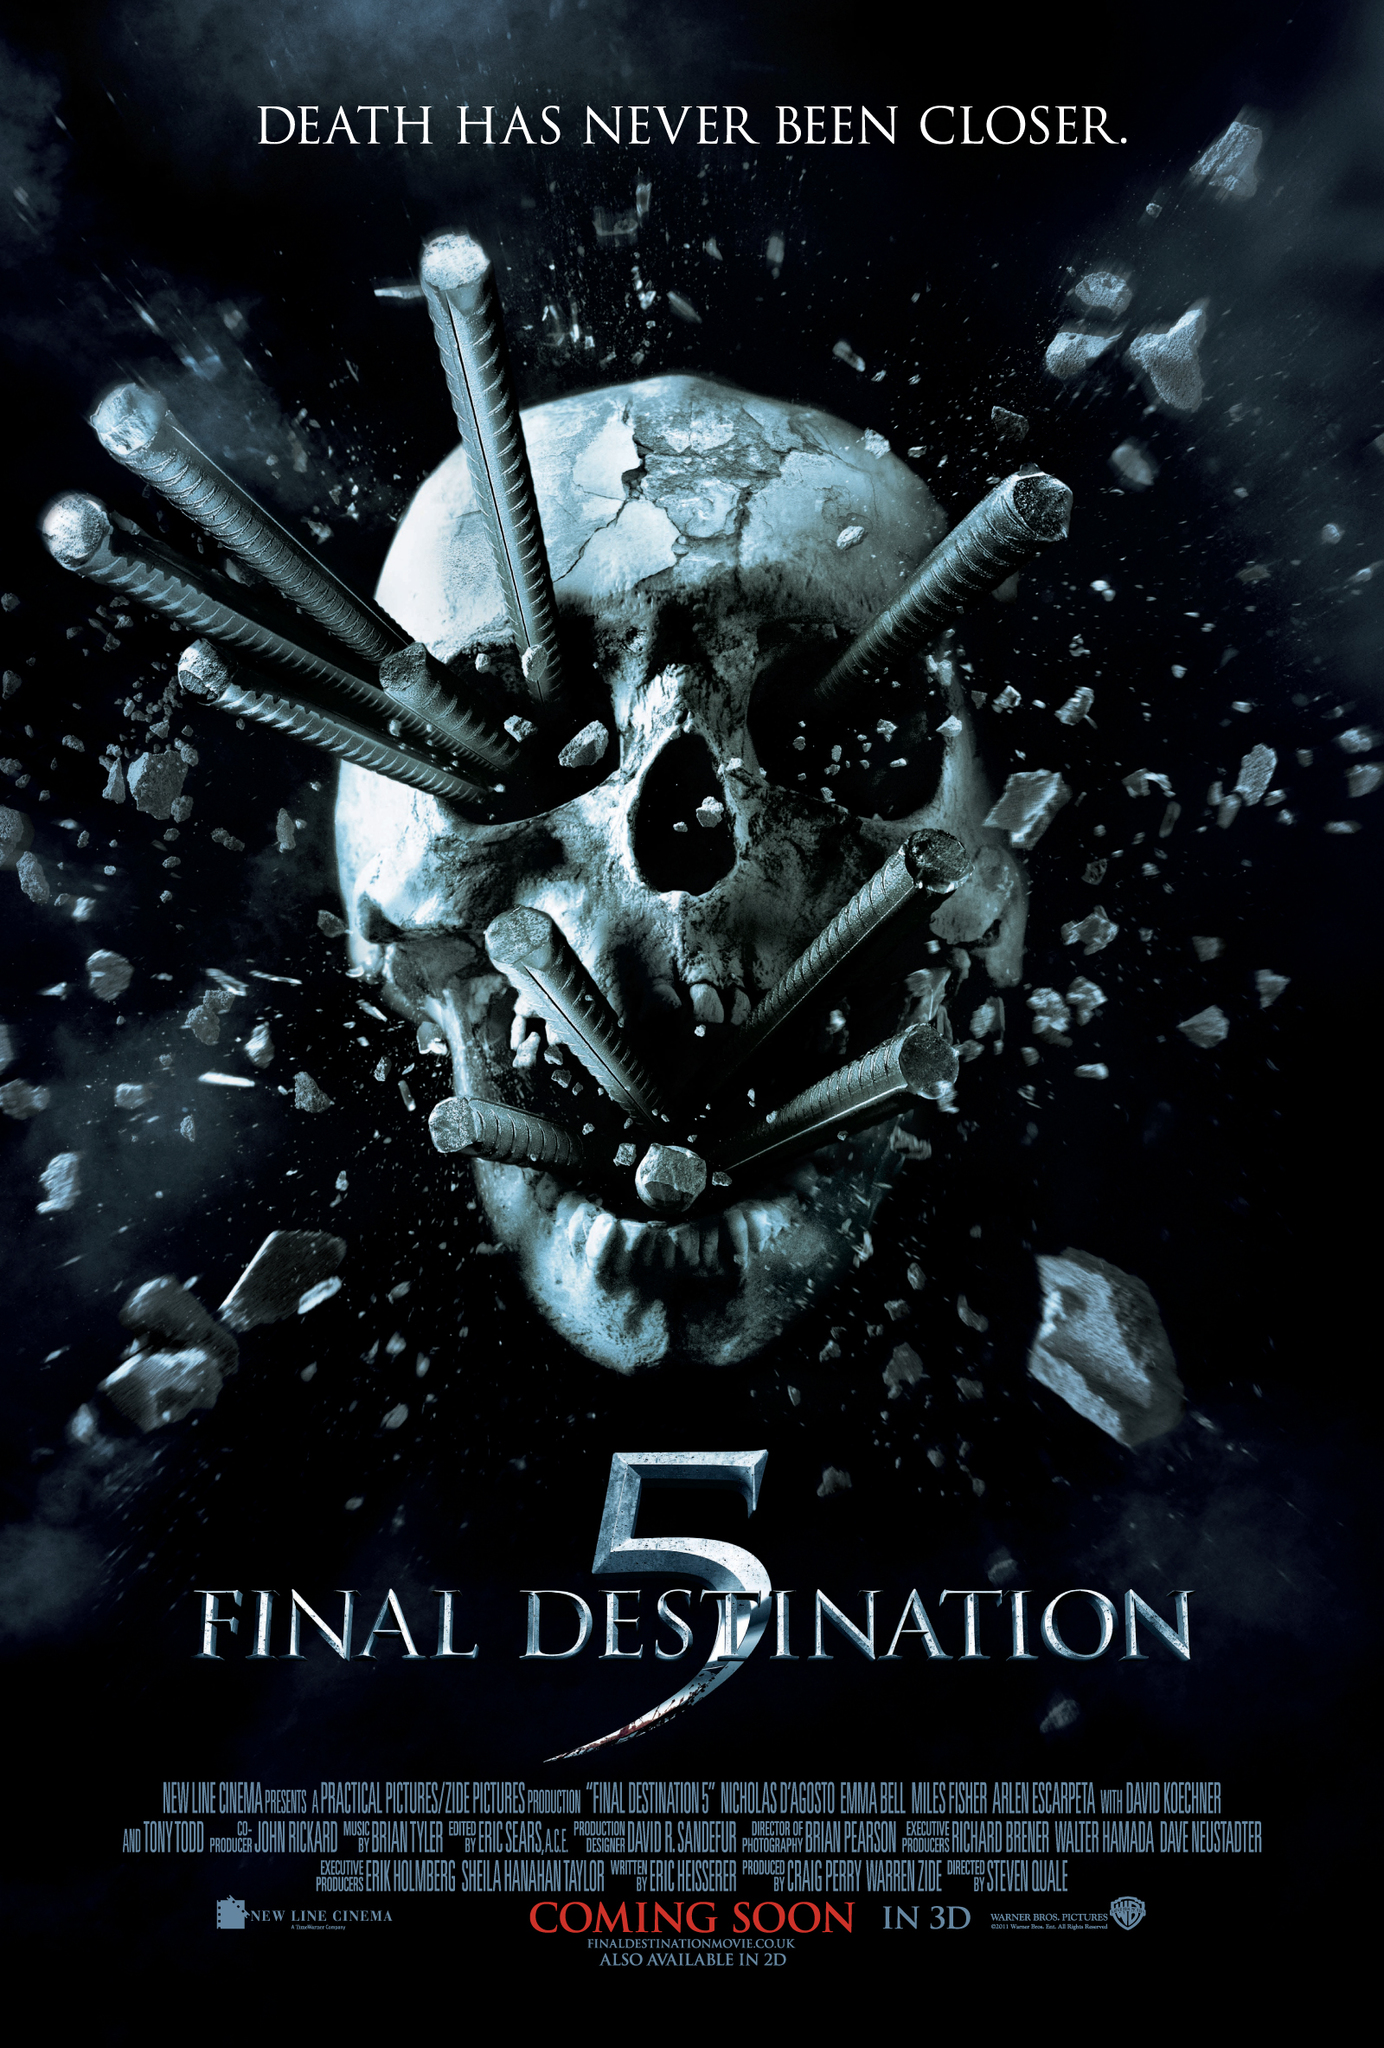 Download final destination 5 (2011) yify torrent for 1080p mp4.